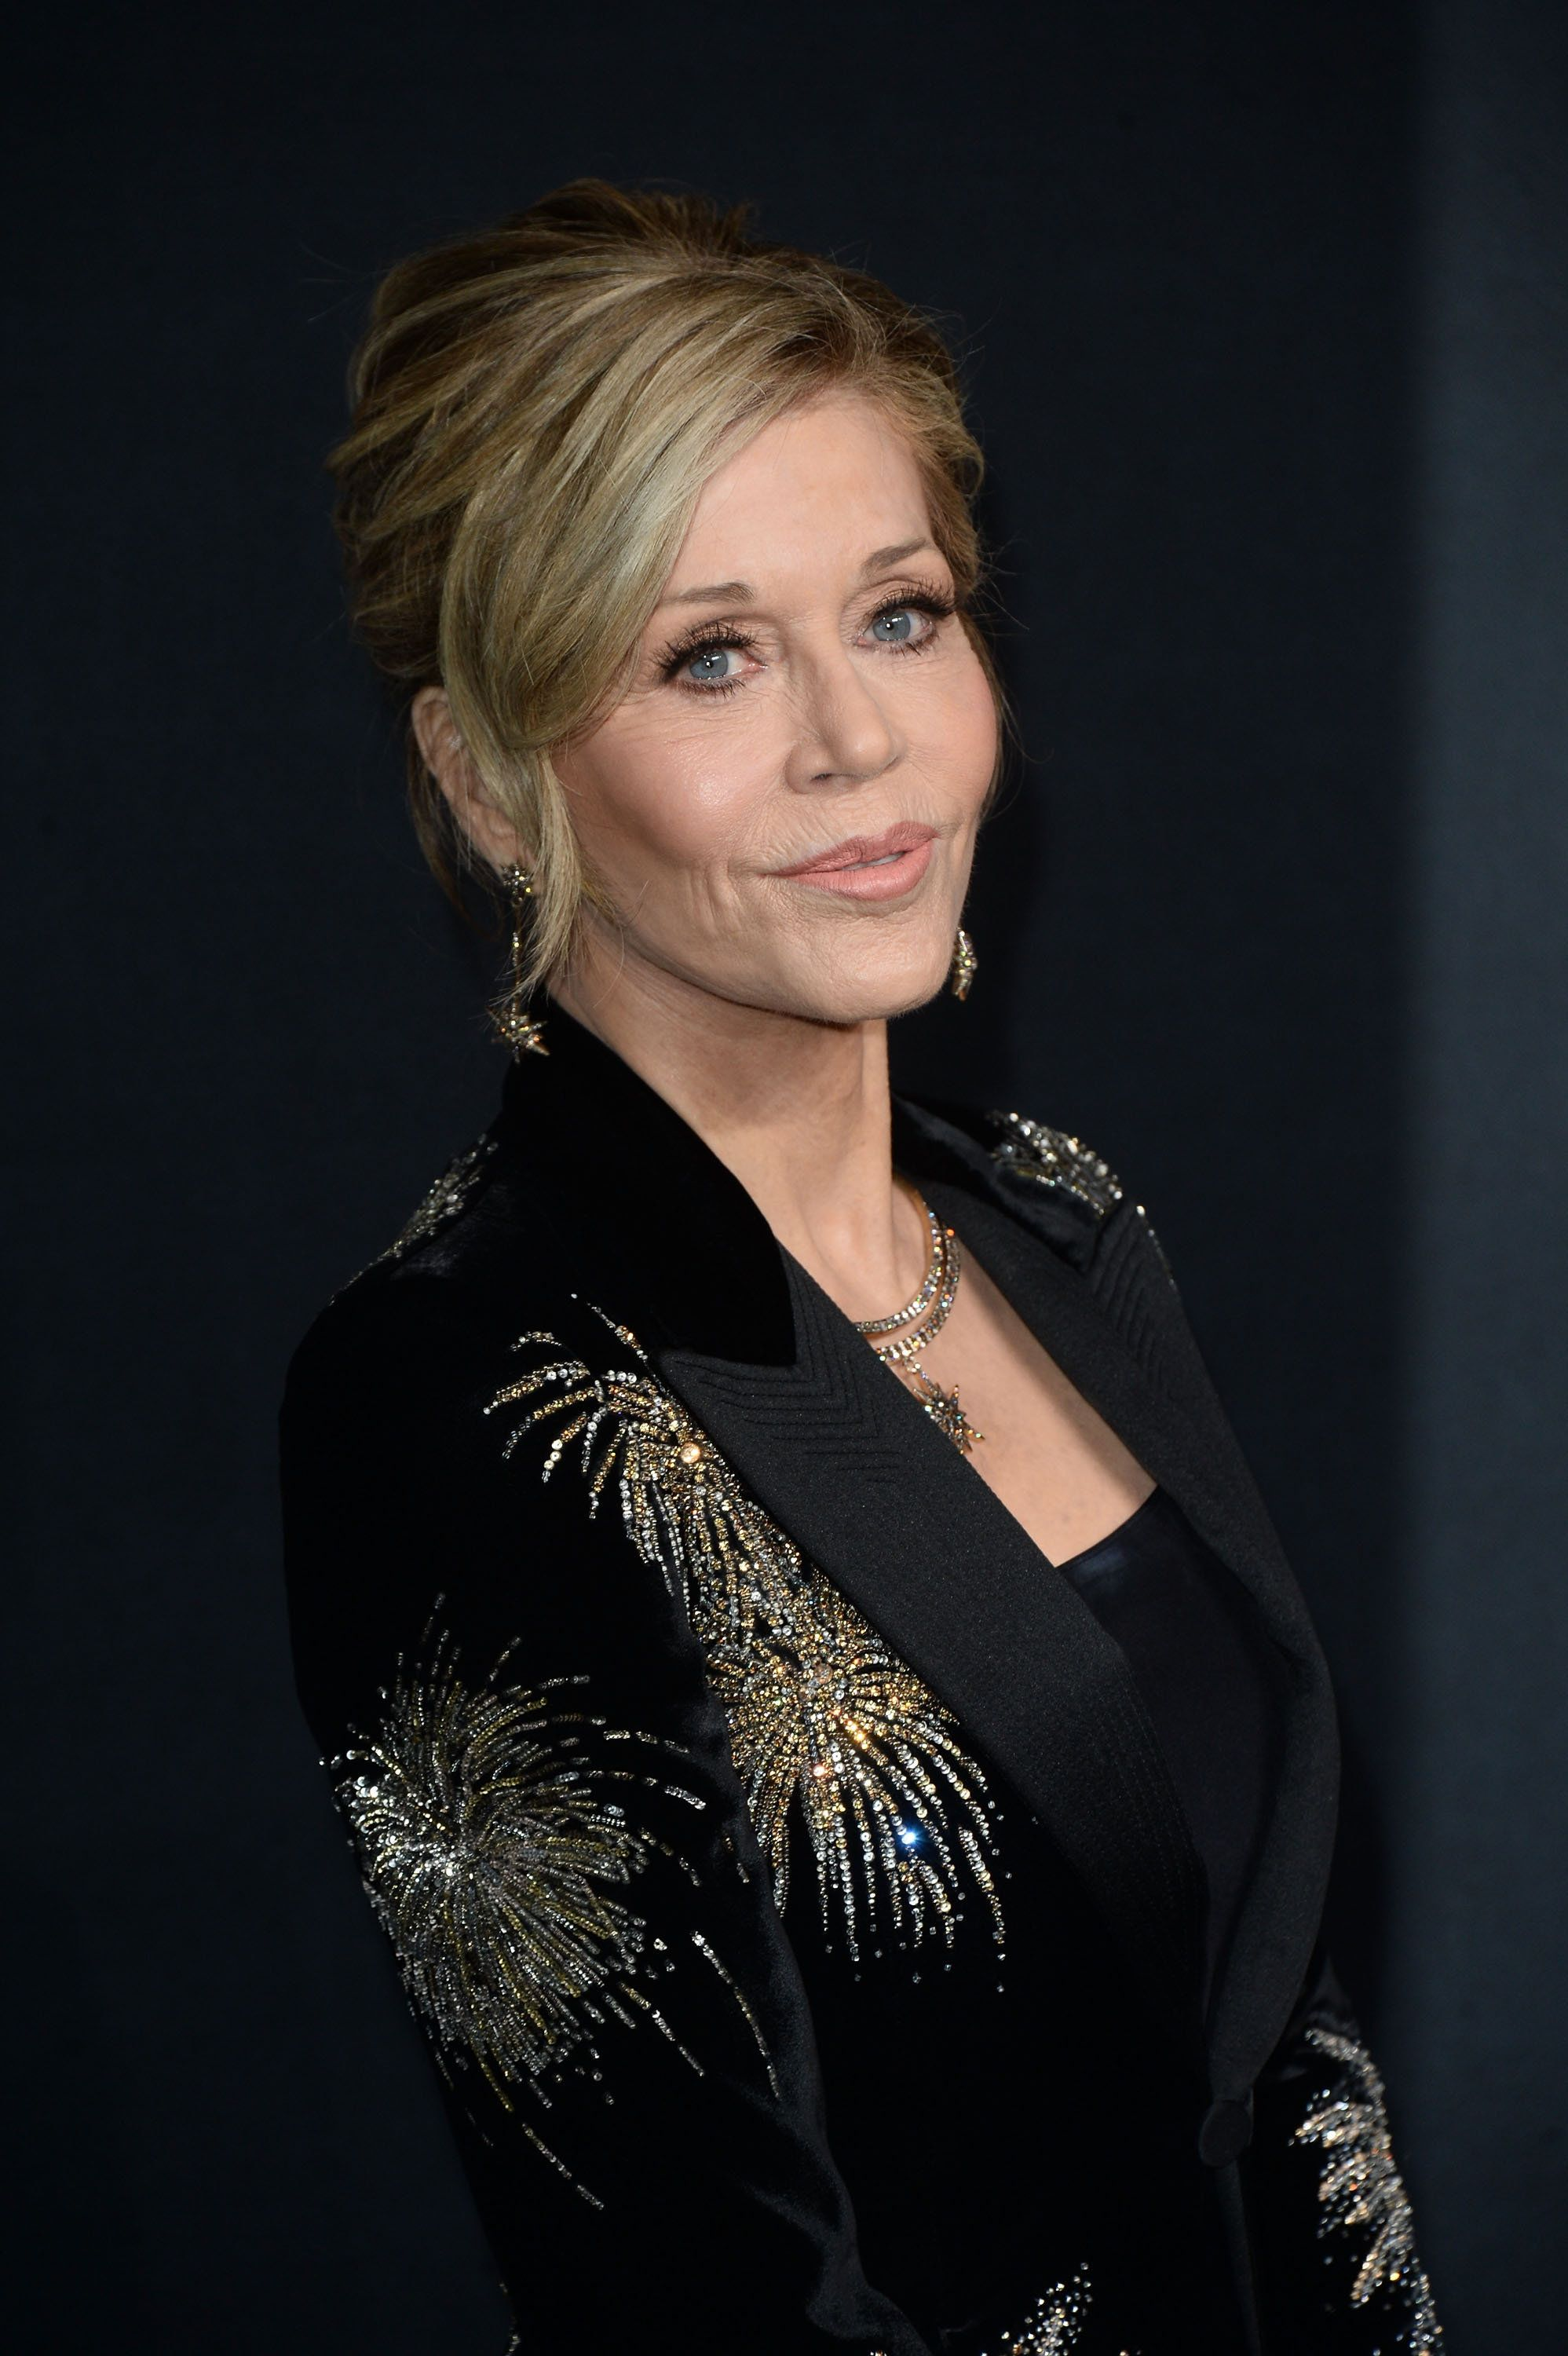 LOS ANGELES, CA - FEBRUARY 10:  Actress Jane Fonda, in Saint Laurent by Hedi Slimane, arrives at the Saint Laurent show at the Hollywood Palladium on February 10, 2016 in Los Angeles, California.  (Photo by Matt Winkelmeyer/Getty Images)